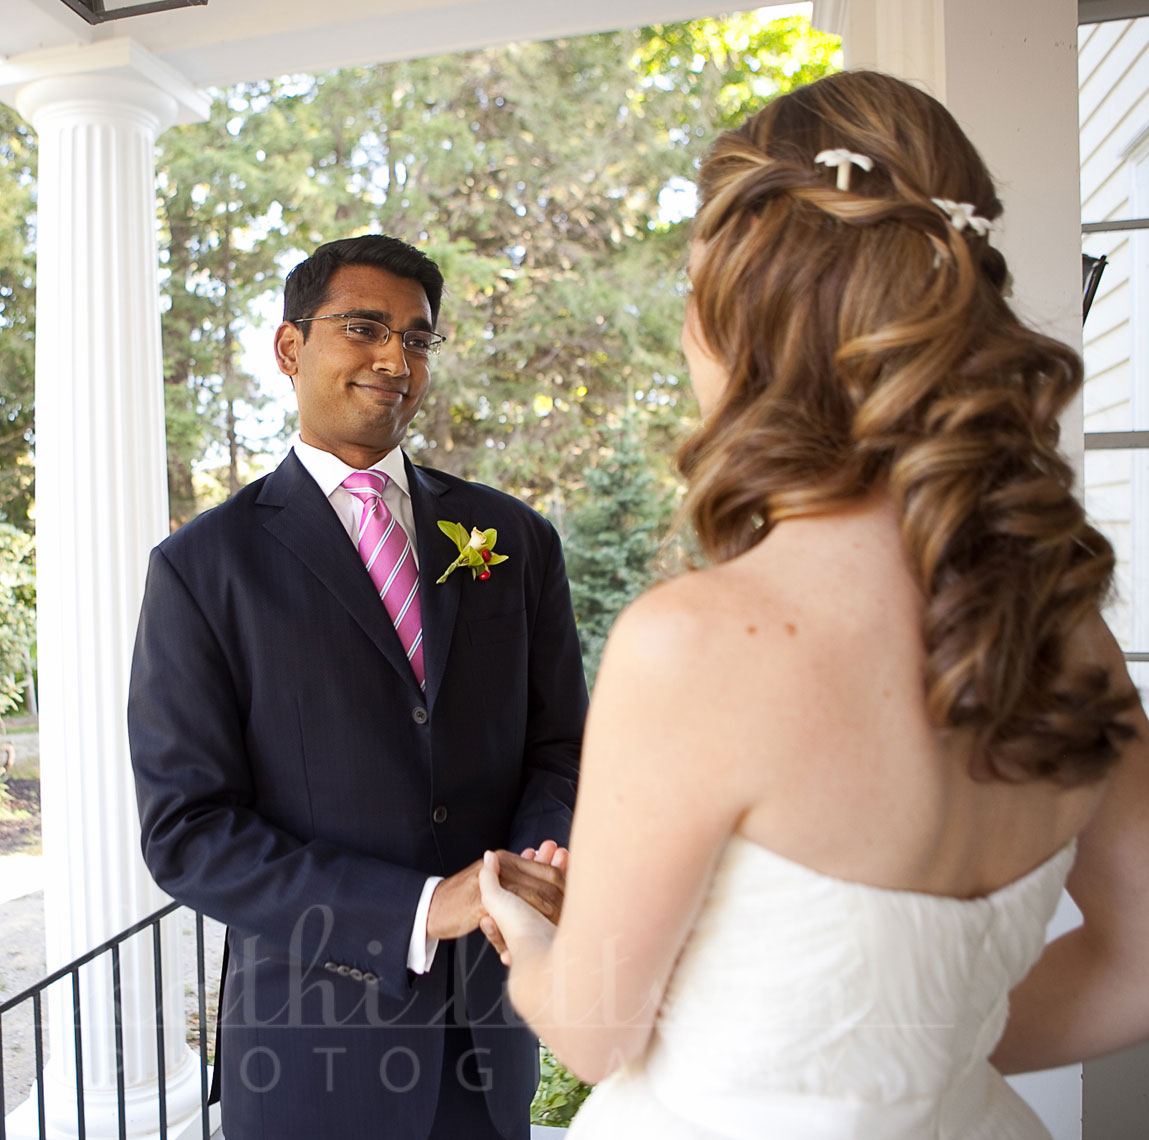 Kathi_Littwin_Photography_Mashomack_wedding_3006